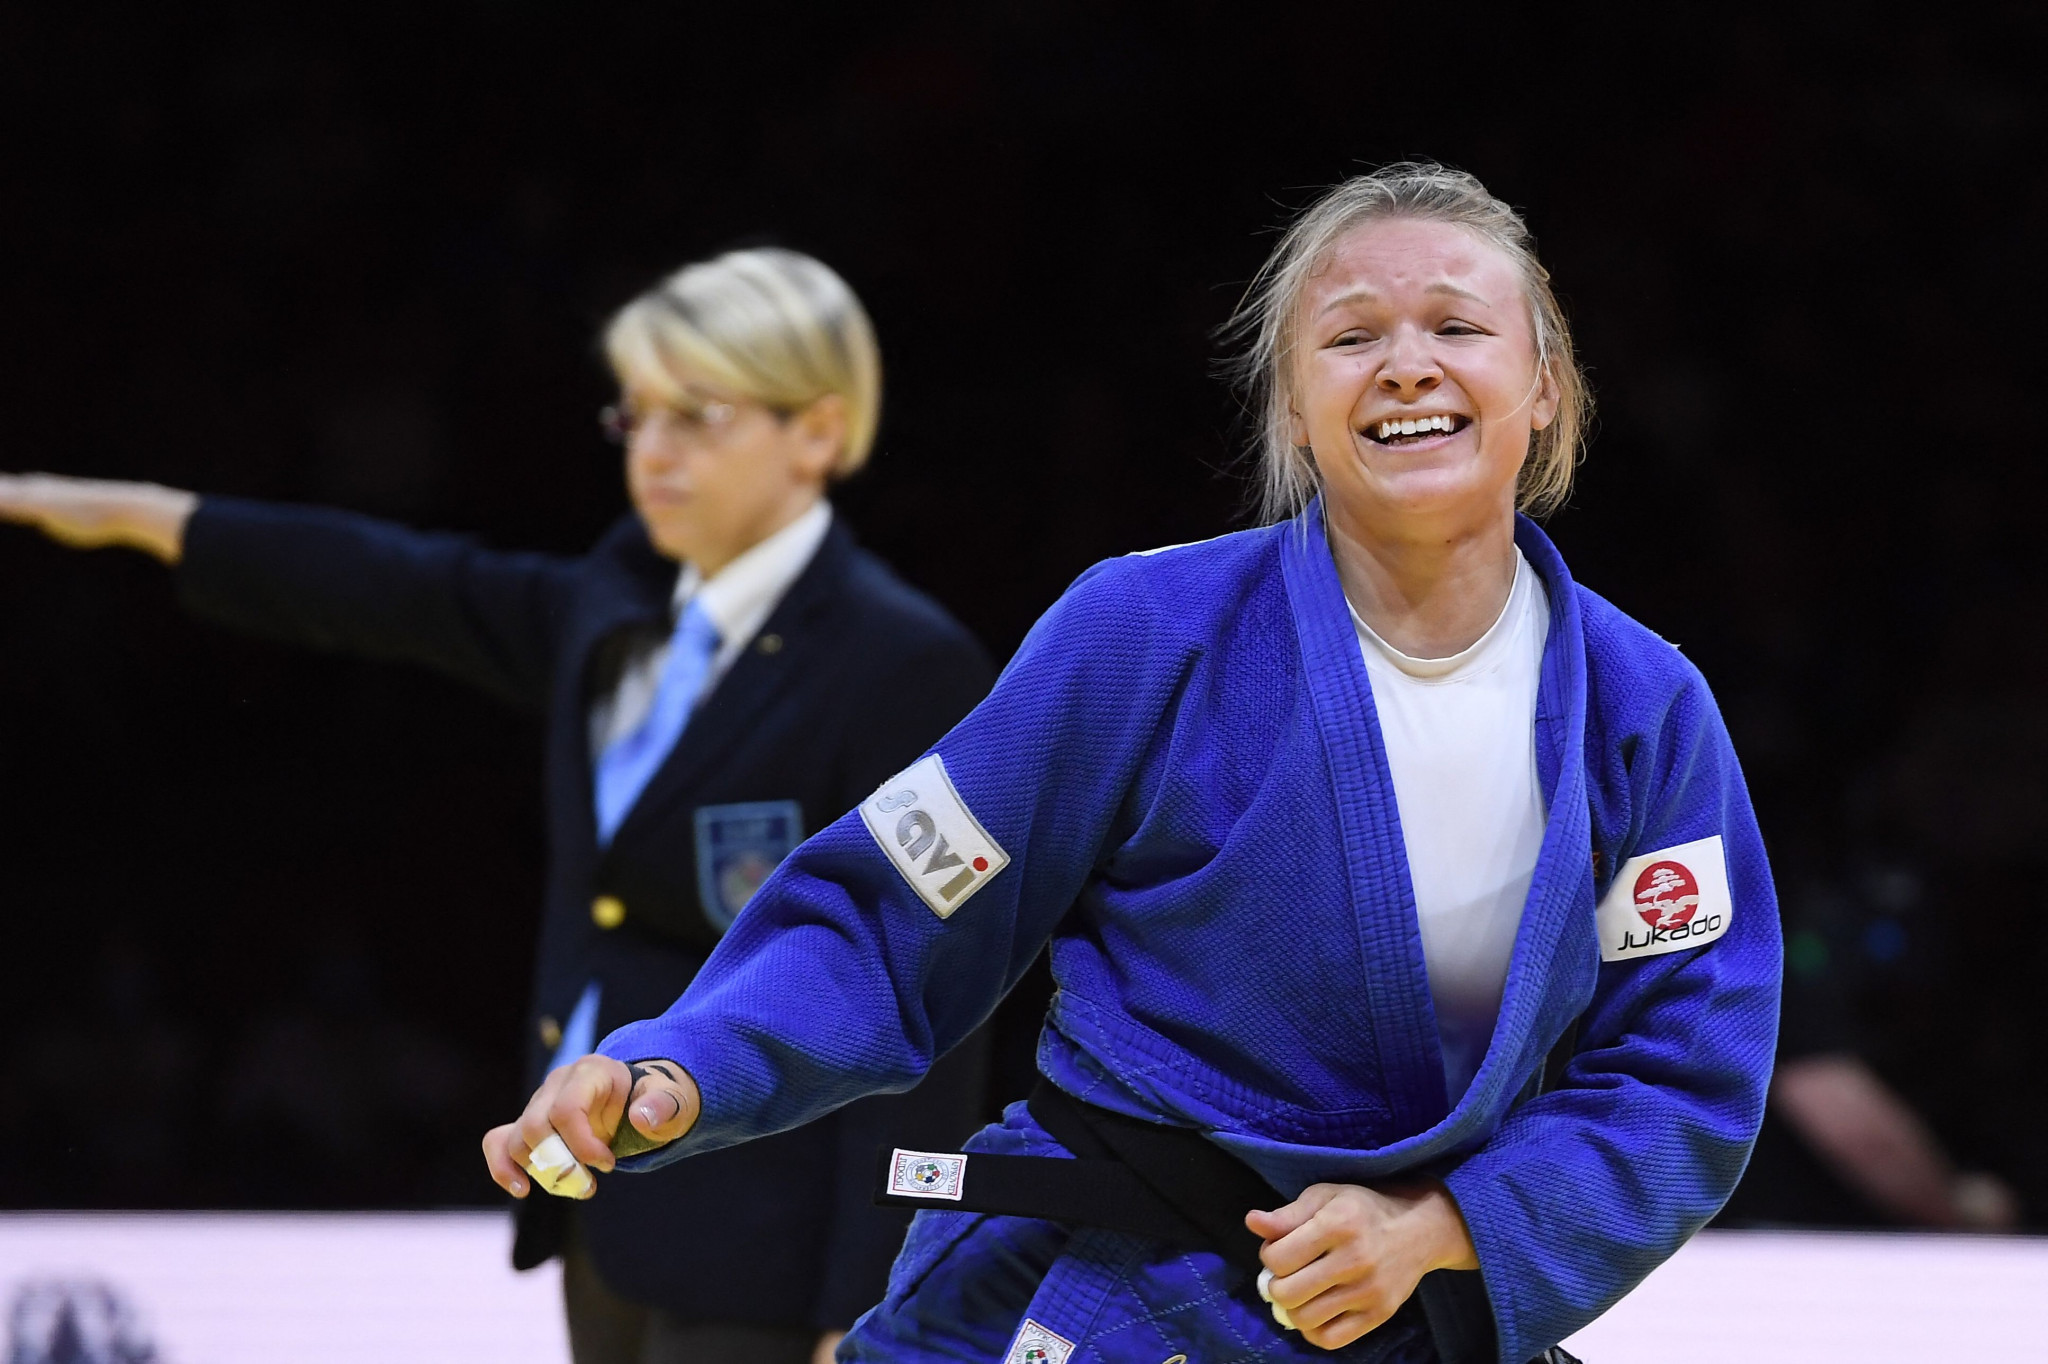 Jessica Klimkait secured her place at Tokyo 2020 by winning gold in the women's under-57kg division ©Getty Images